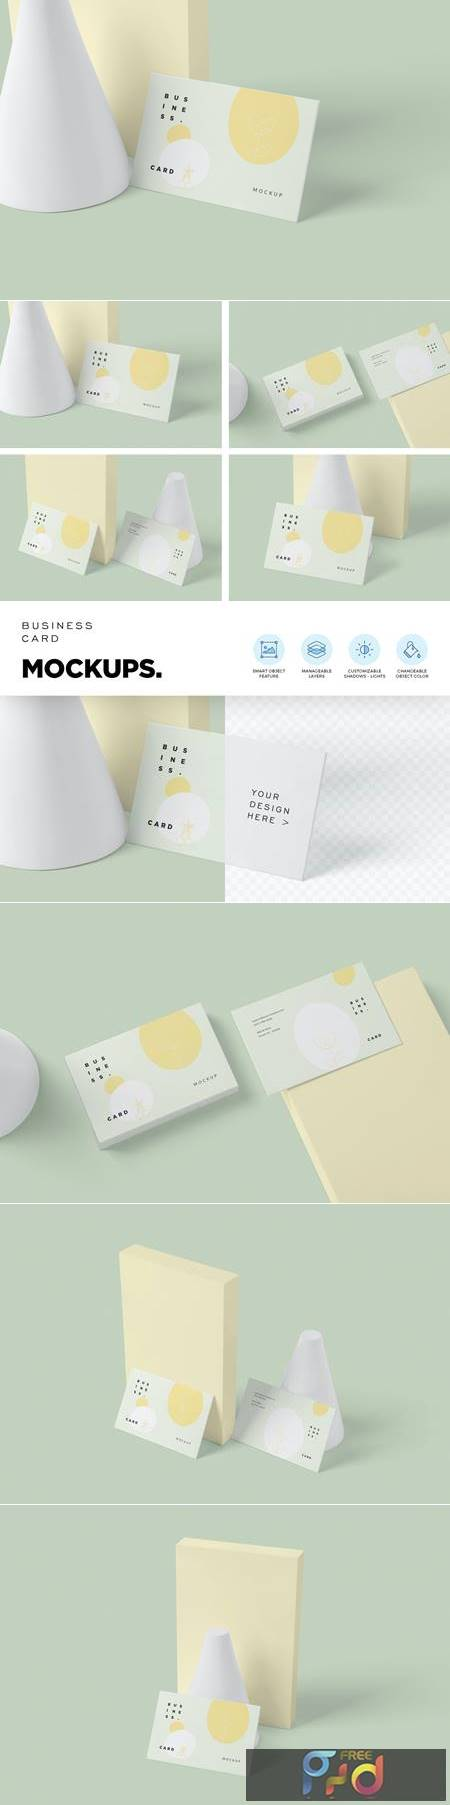 Corporate Business Card Mockups GUE4ELL 1